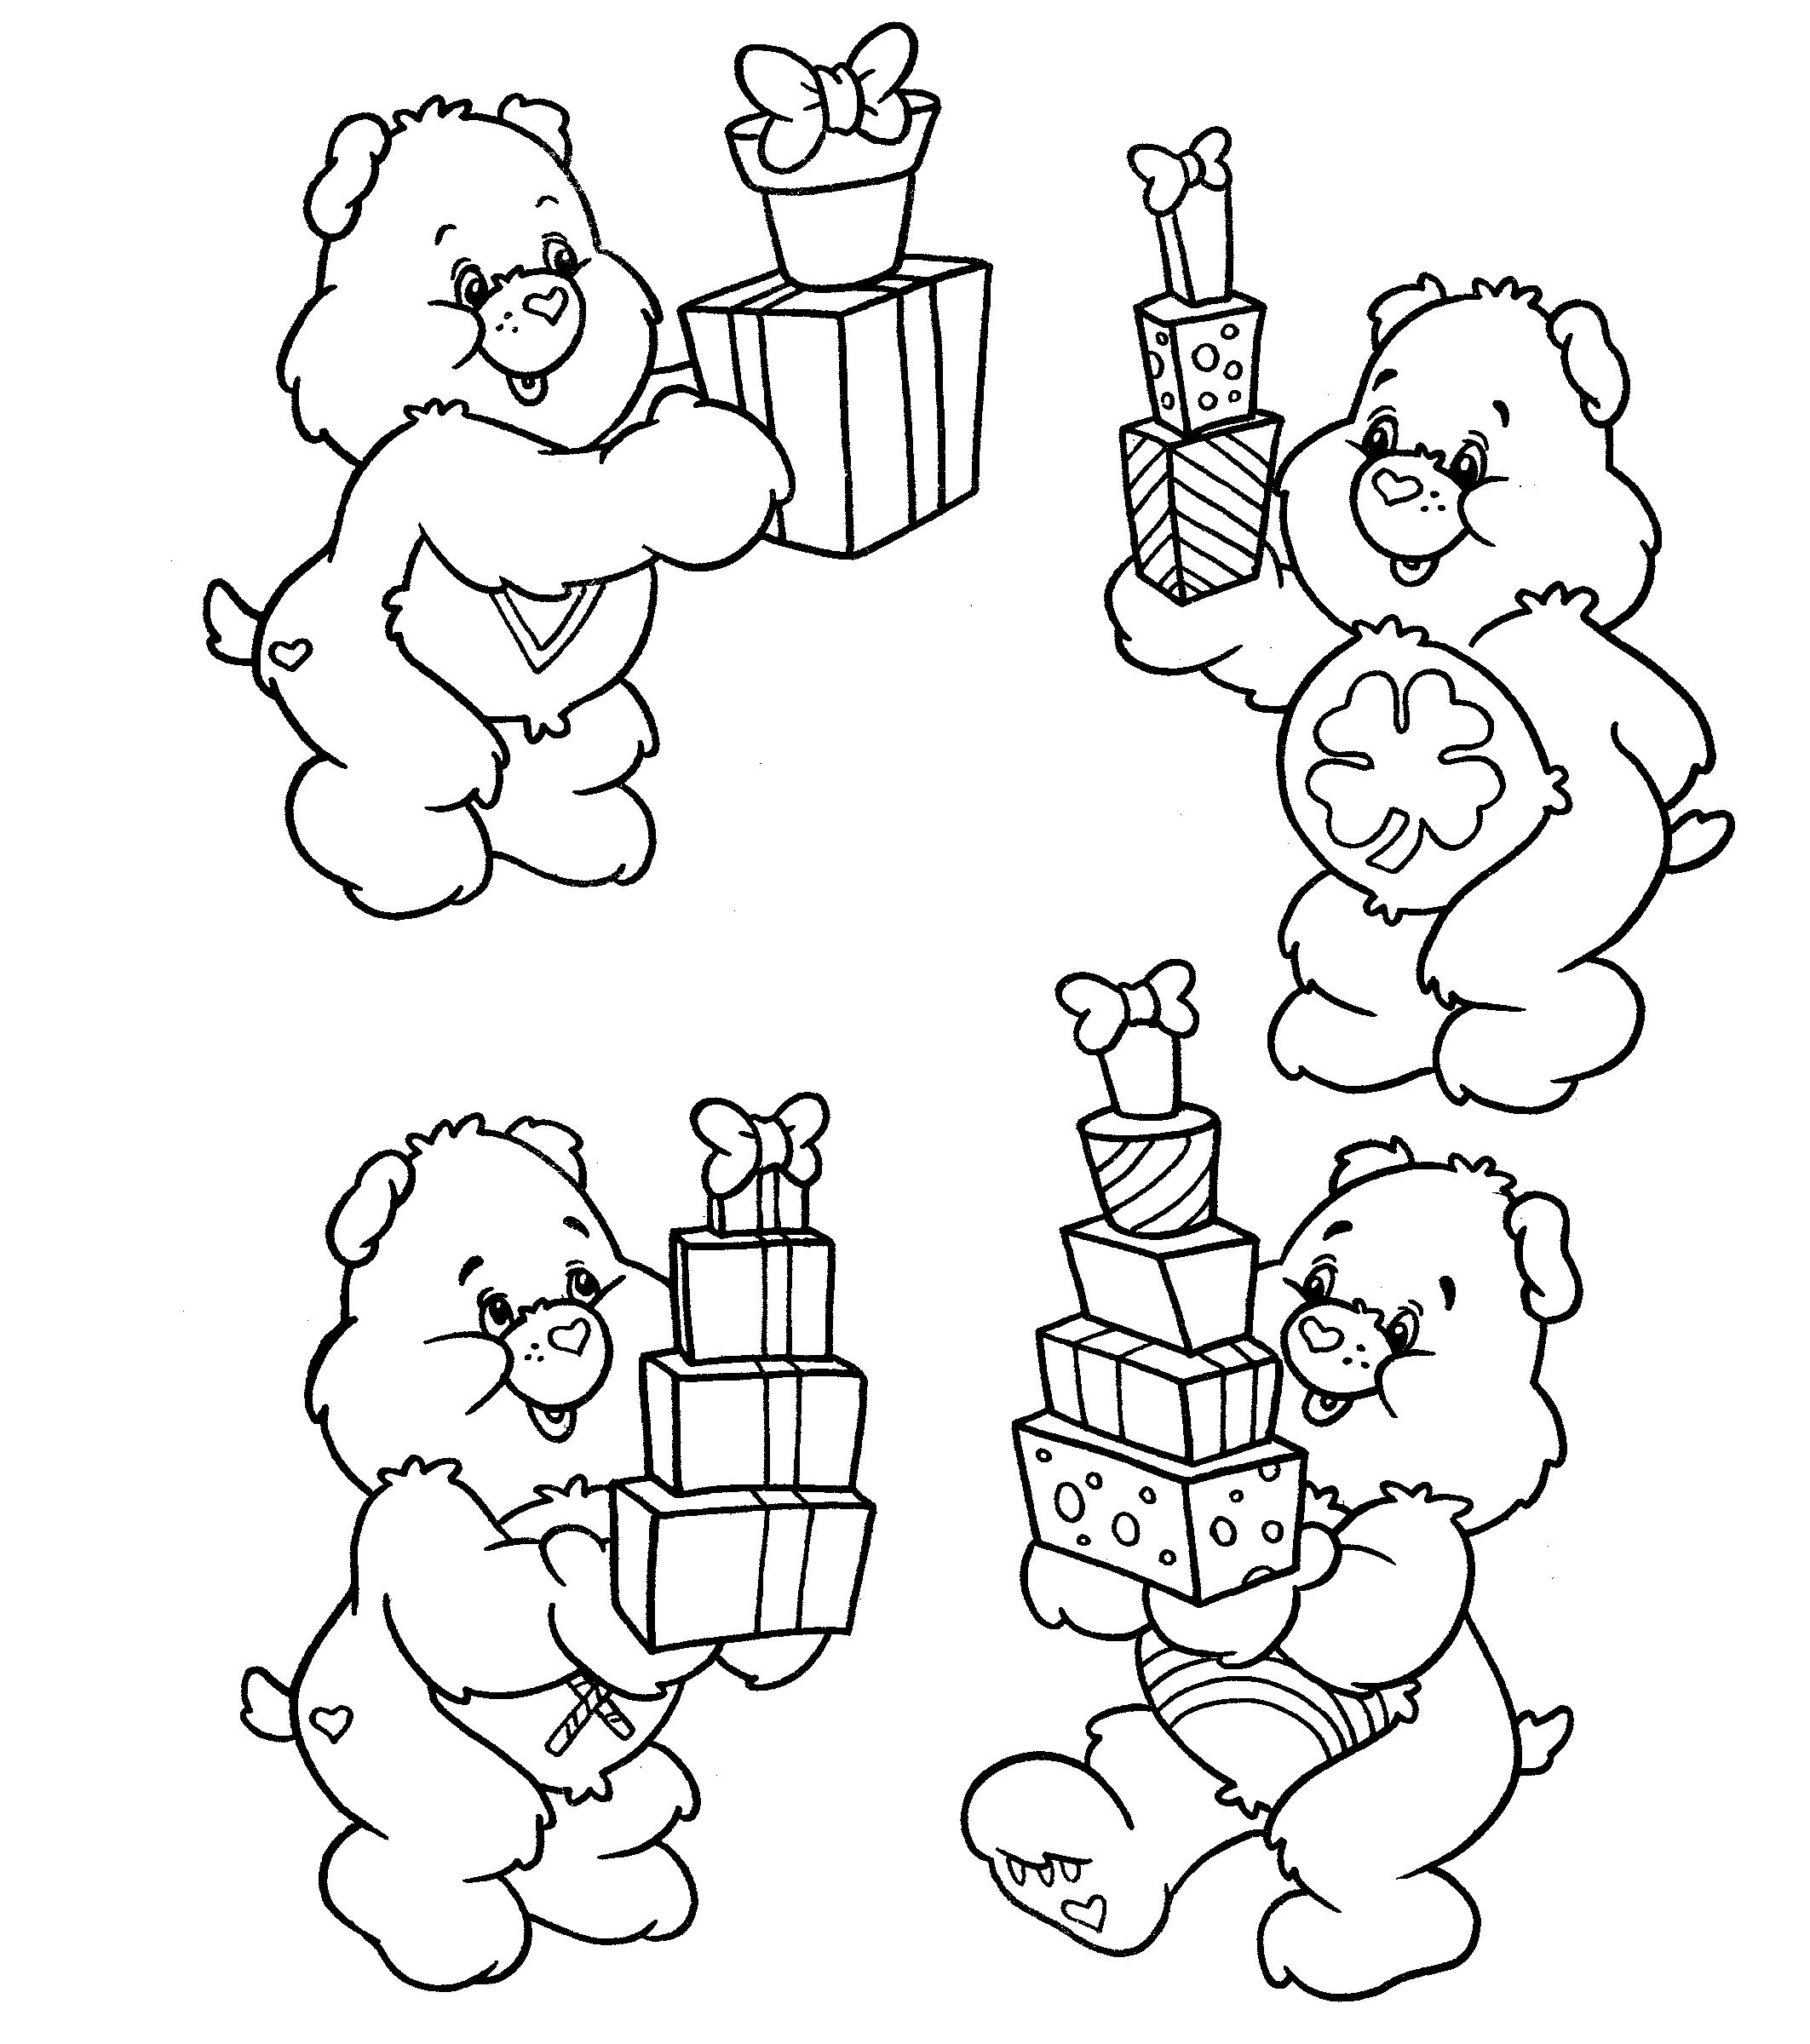 hugs and kisses coloring pages - photo#13